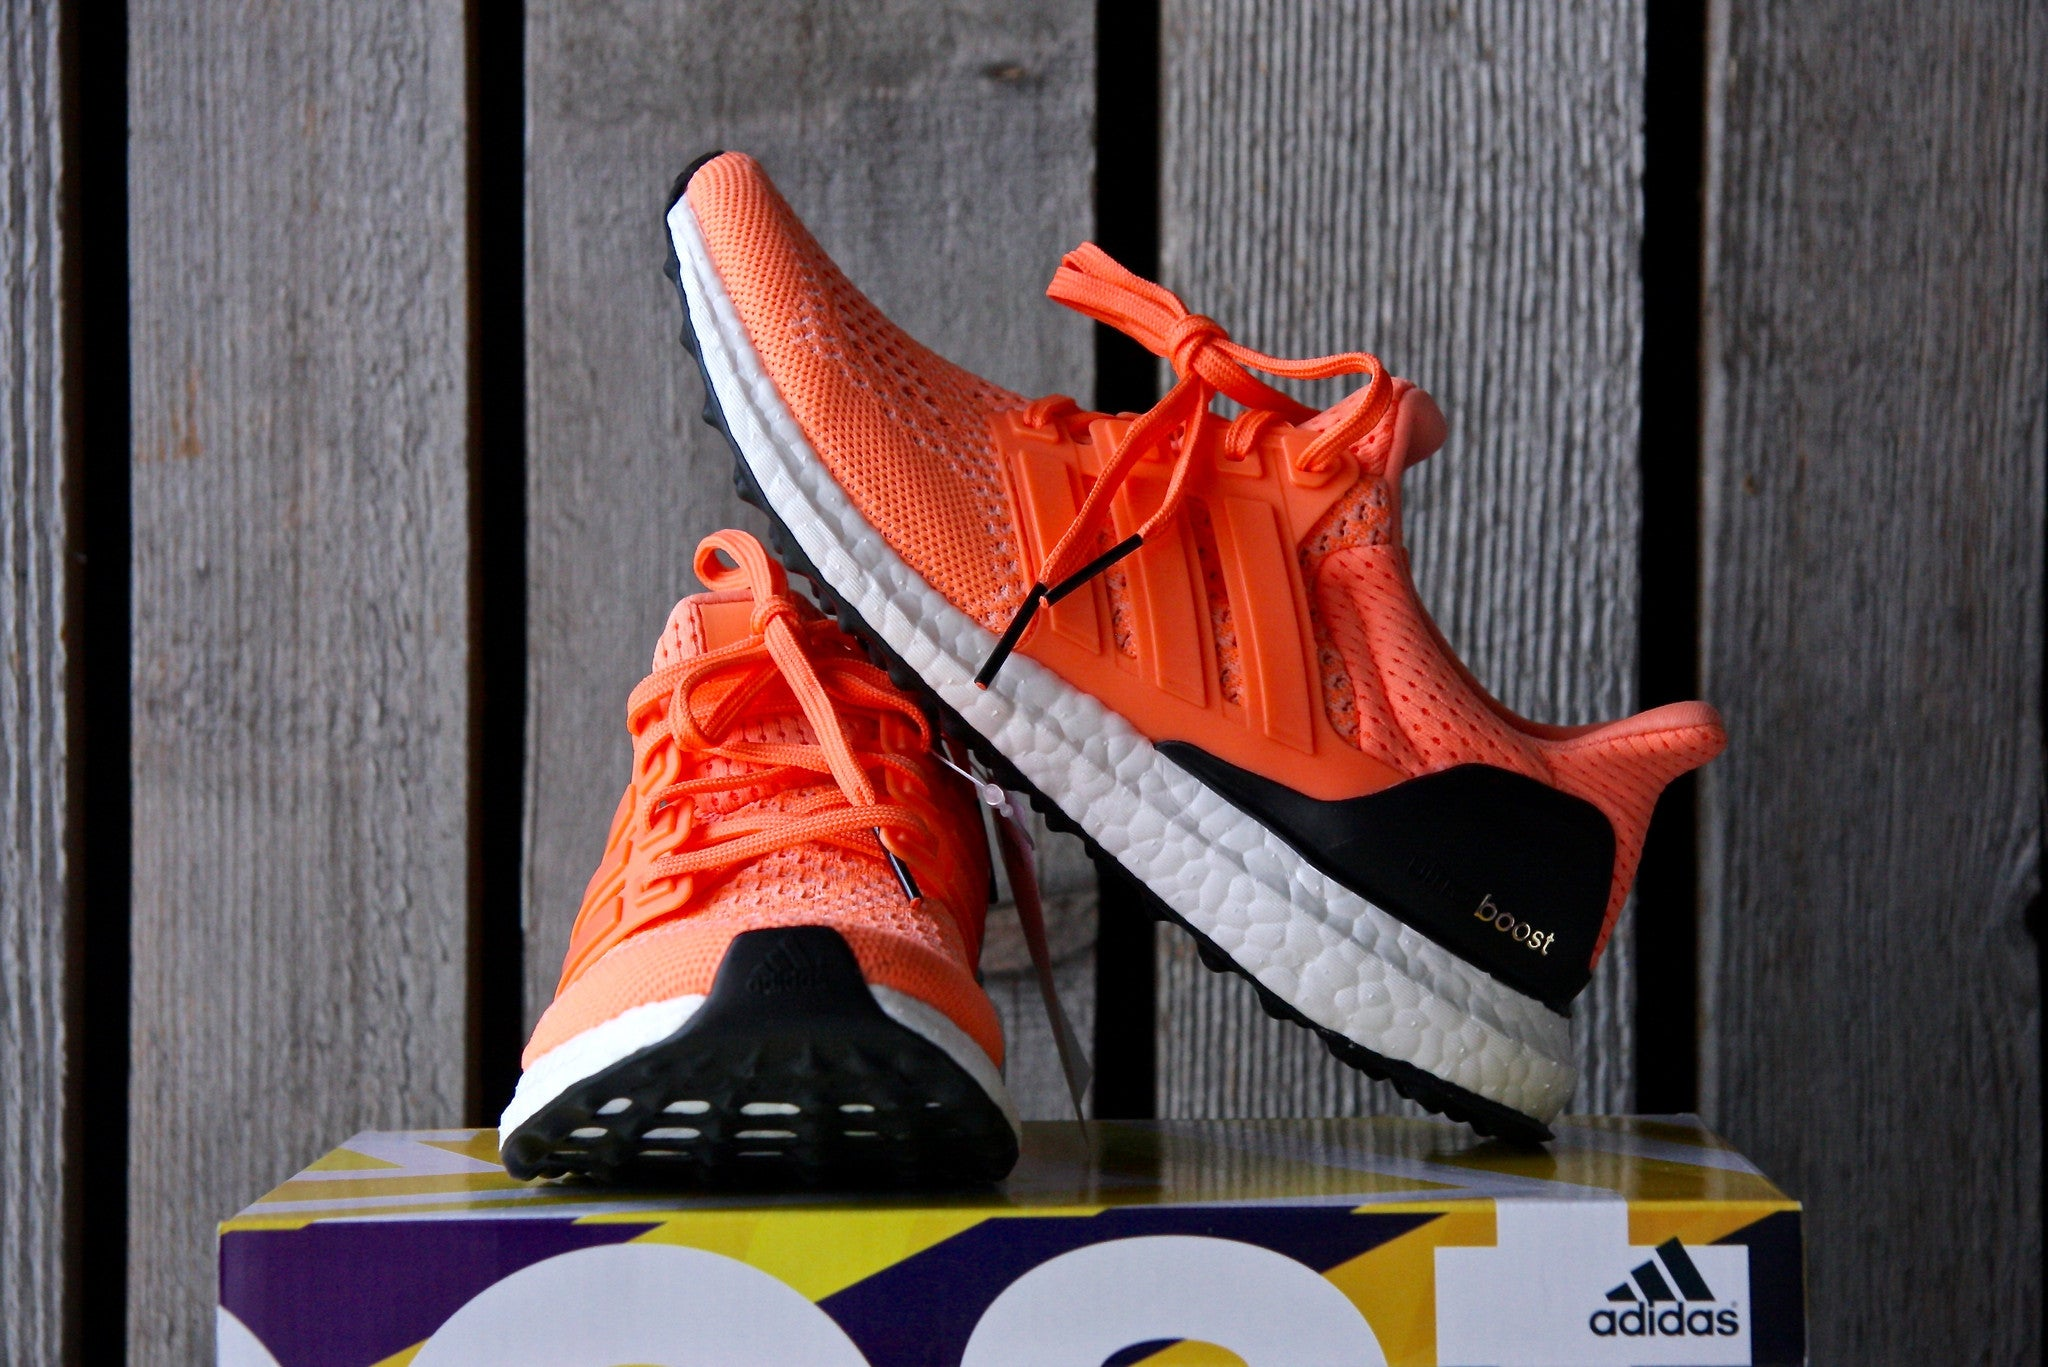 Adidas Ultra Boost Flash Orange